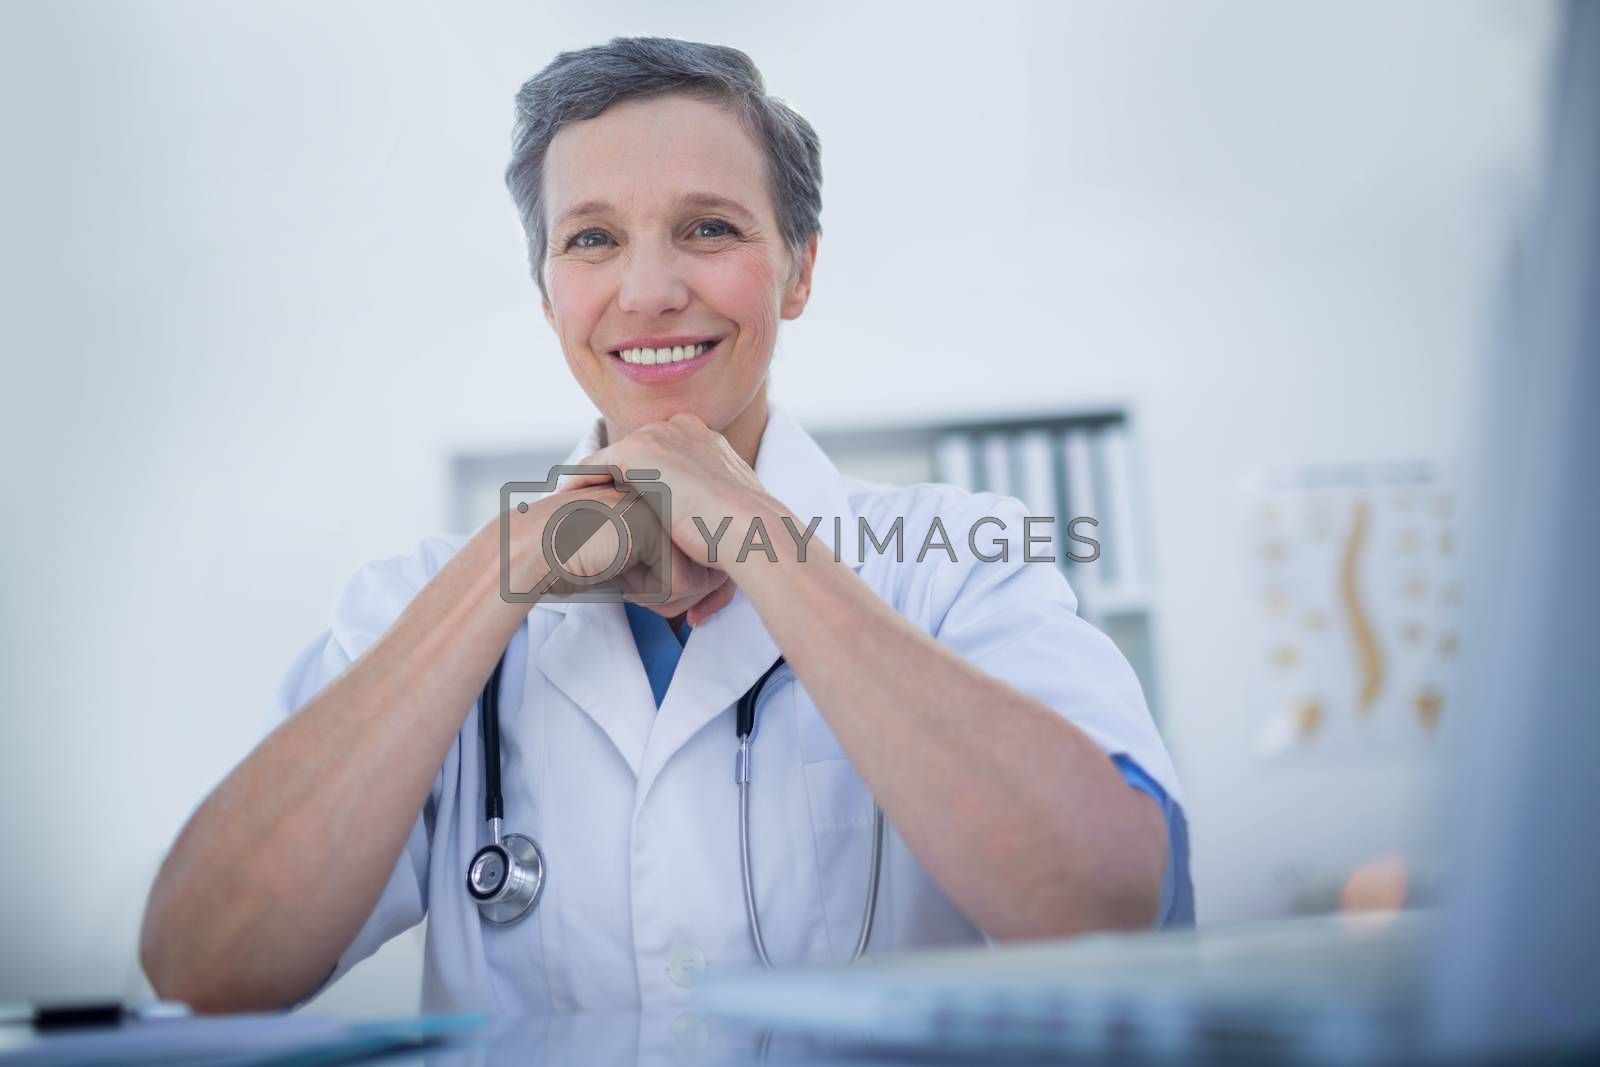 Royalty free image of Happy female doctor looking at camera  by Wavebreakmedia